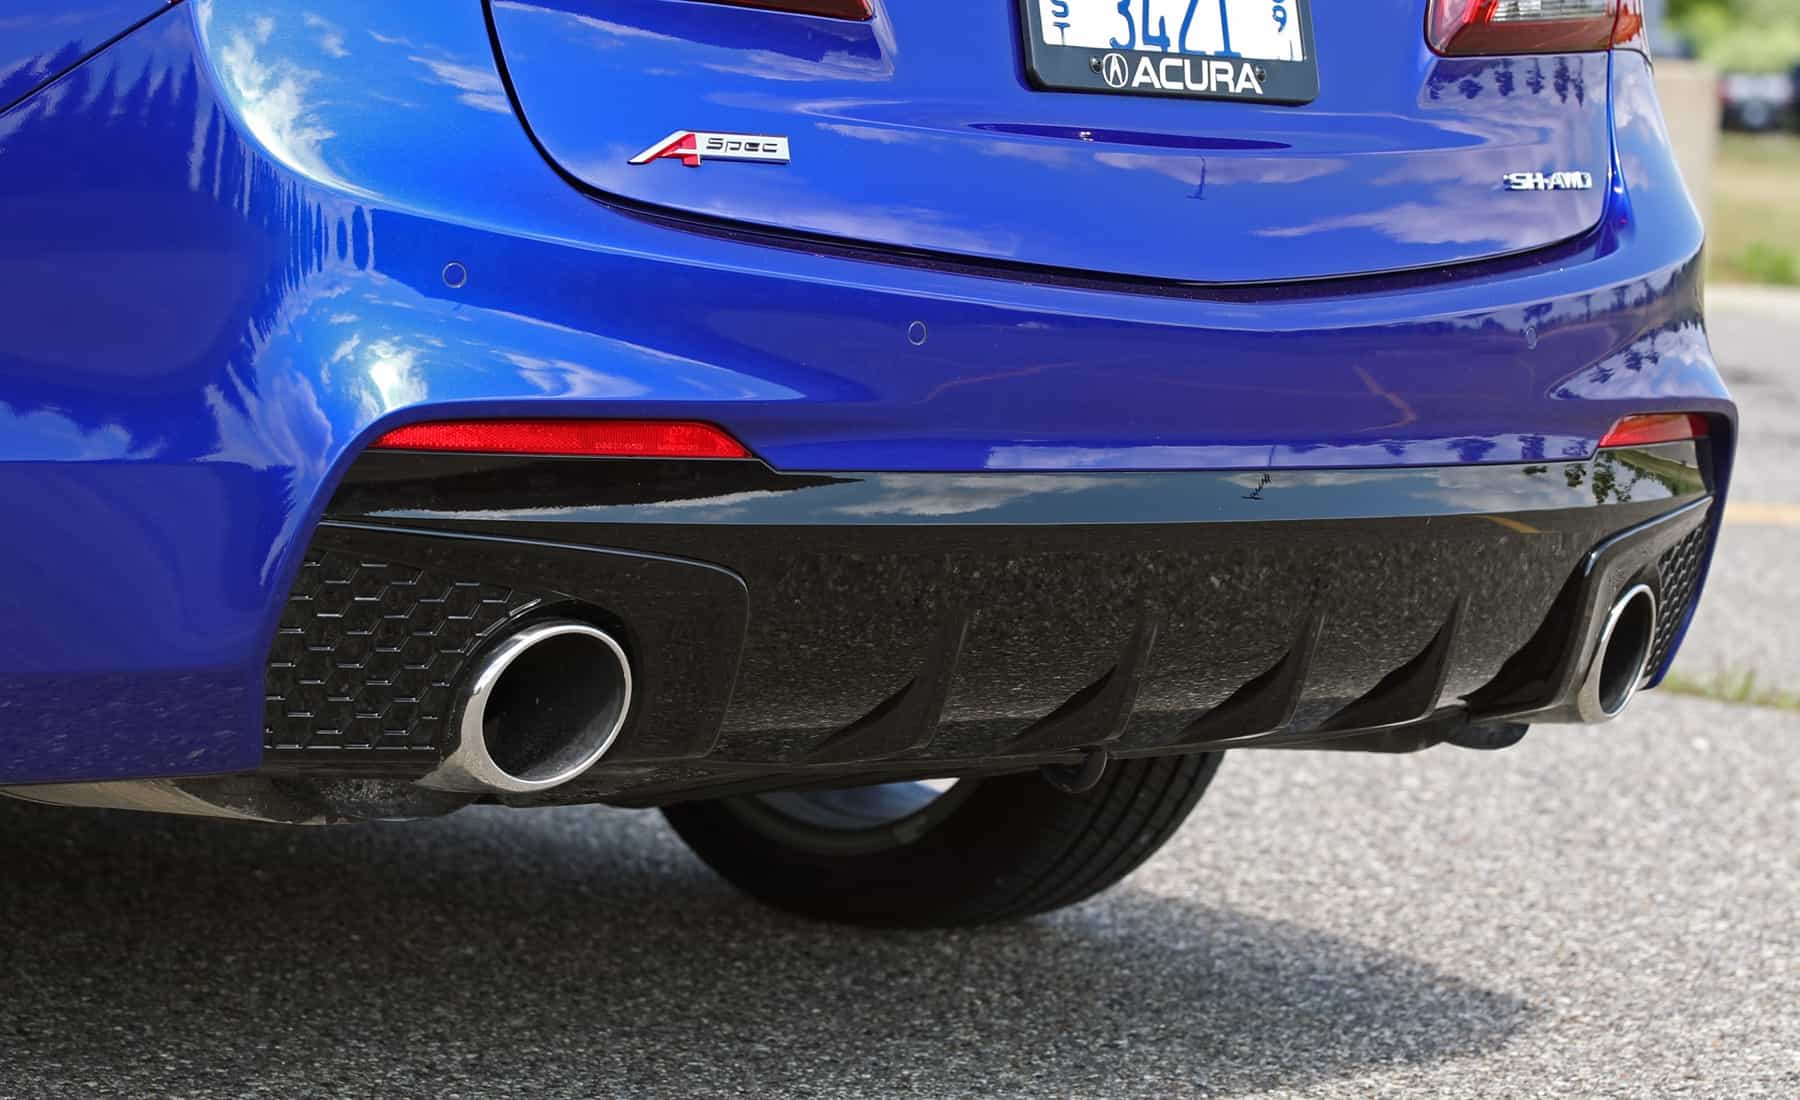 2018 Acura TLX Exterior View Rear Body And Exhaust Muffler (Photo 13 of 46)